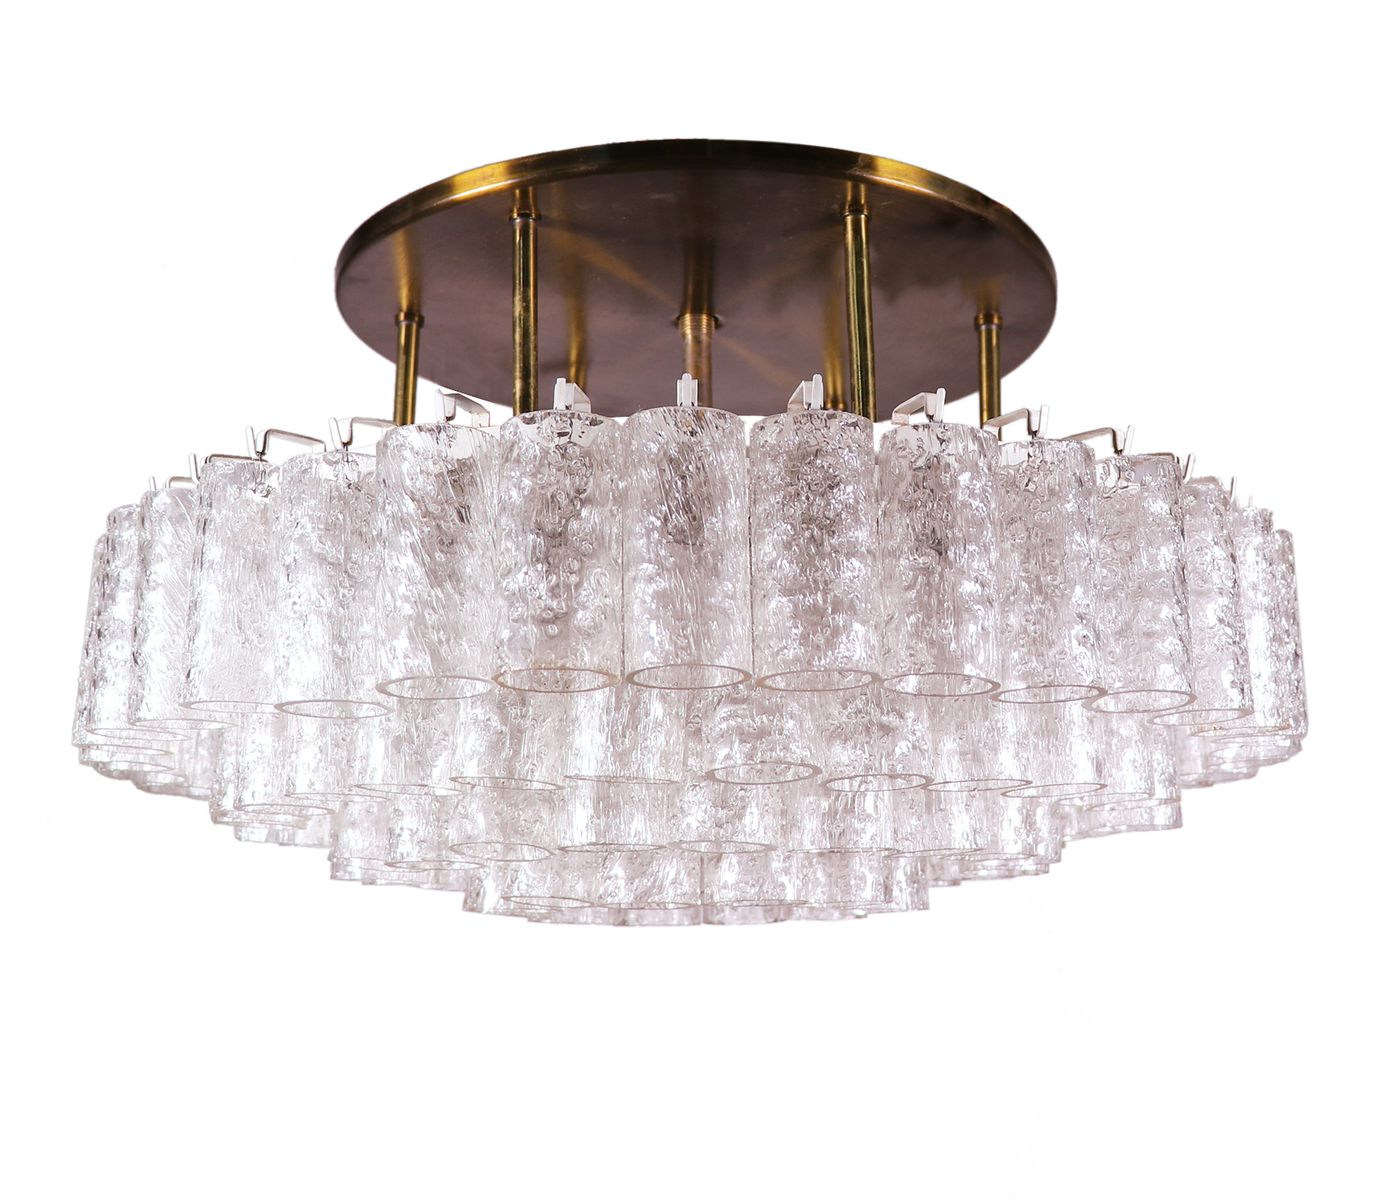 stores crystal chandeliers lights ceiling smoke crystals white flush and brizzo round contemporary shade lamp lighting s picture of chandelier finish mount black clear chrome organza